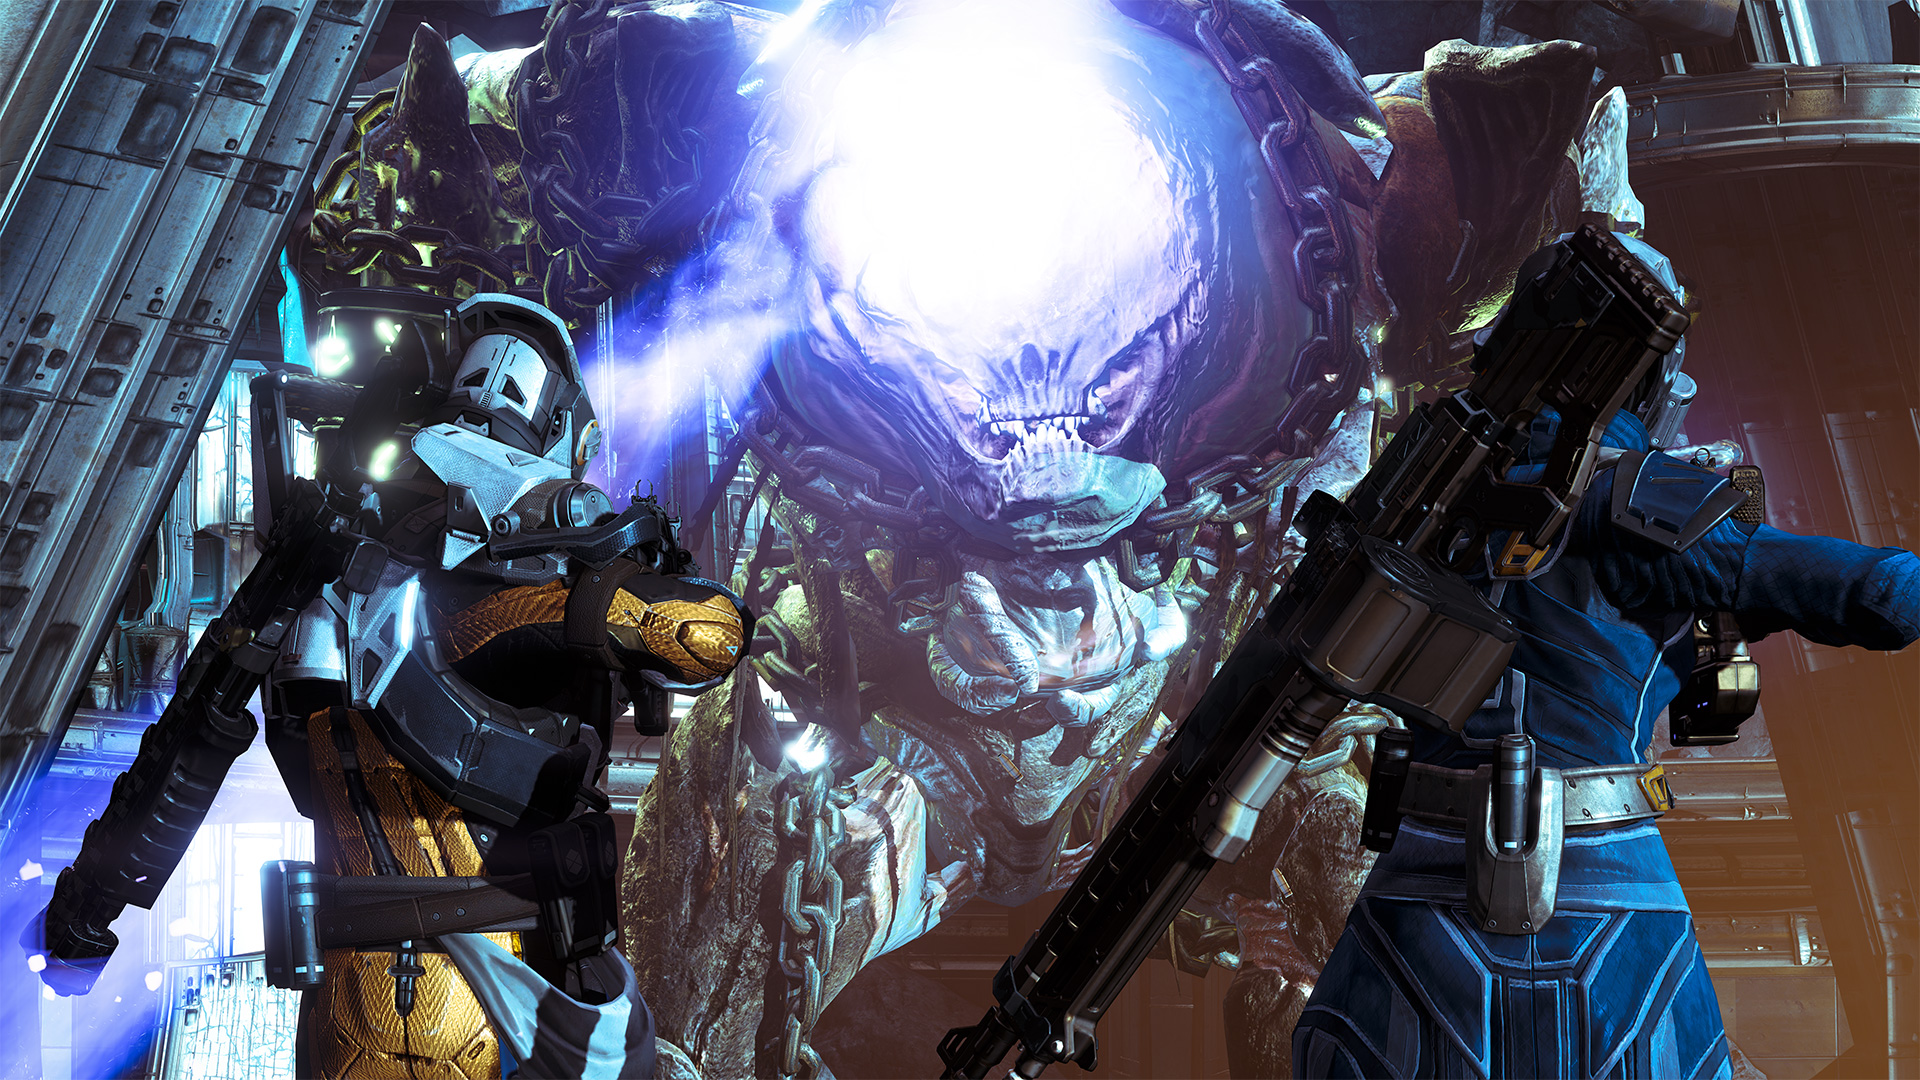 Destiny on five hours a week: How to get the most loot with the least frustration